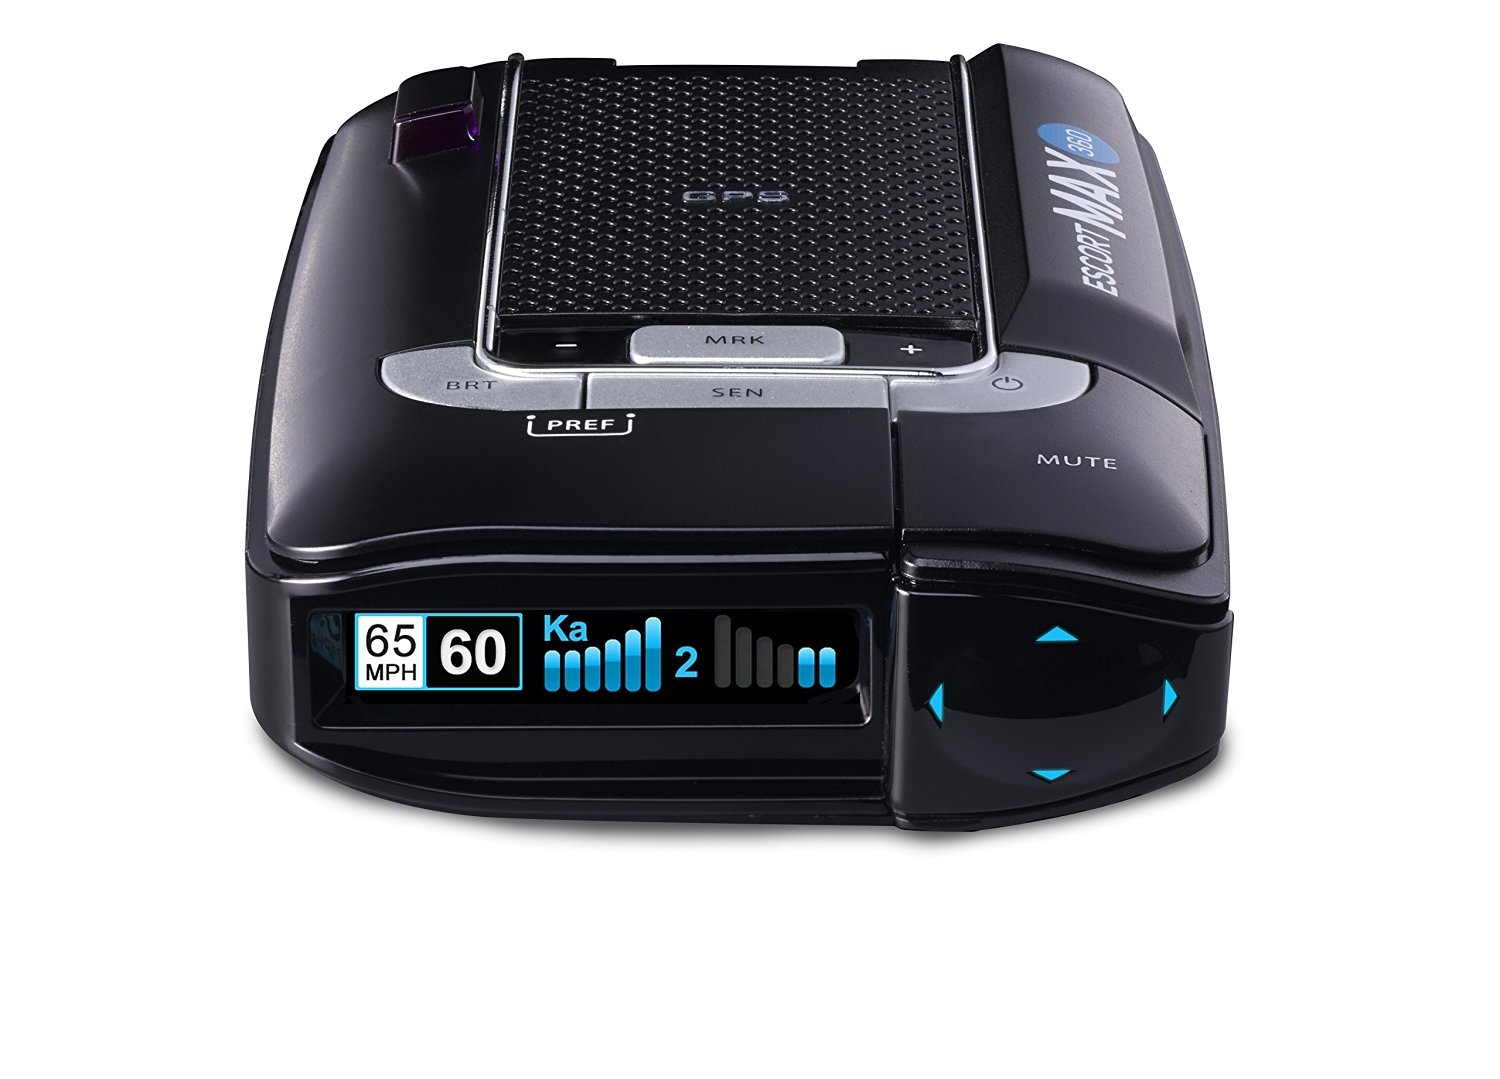 escort max 360, most expensive radar detector, escort defender, escort live app